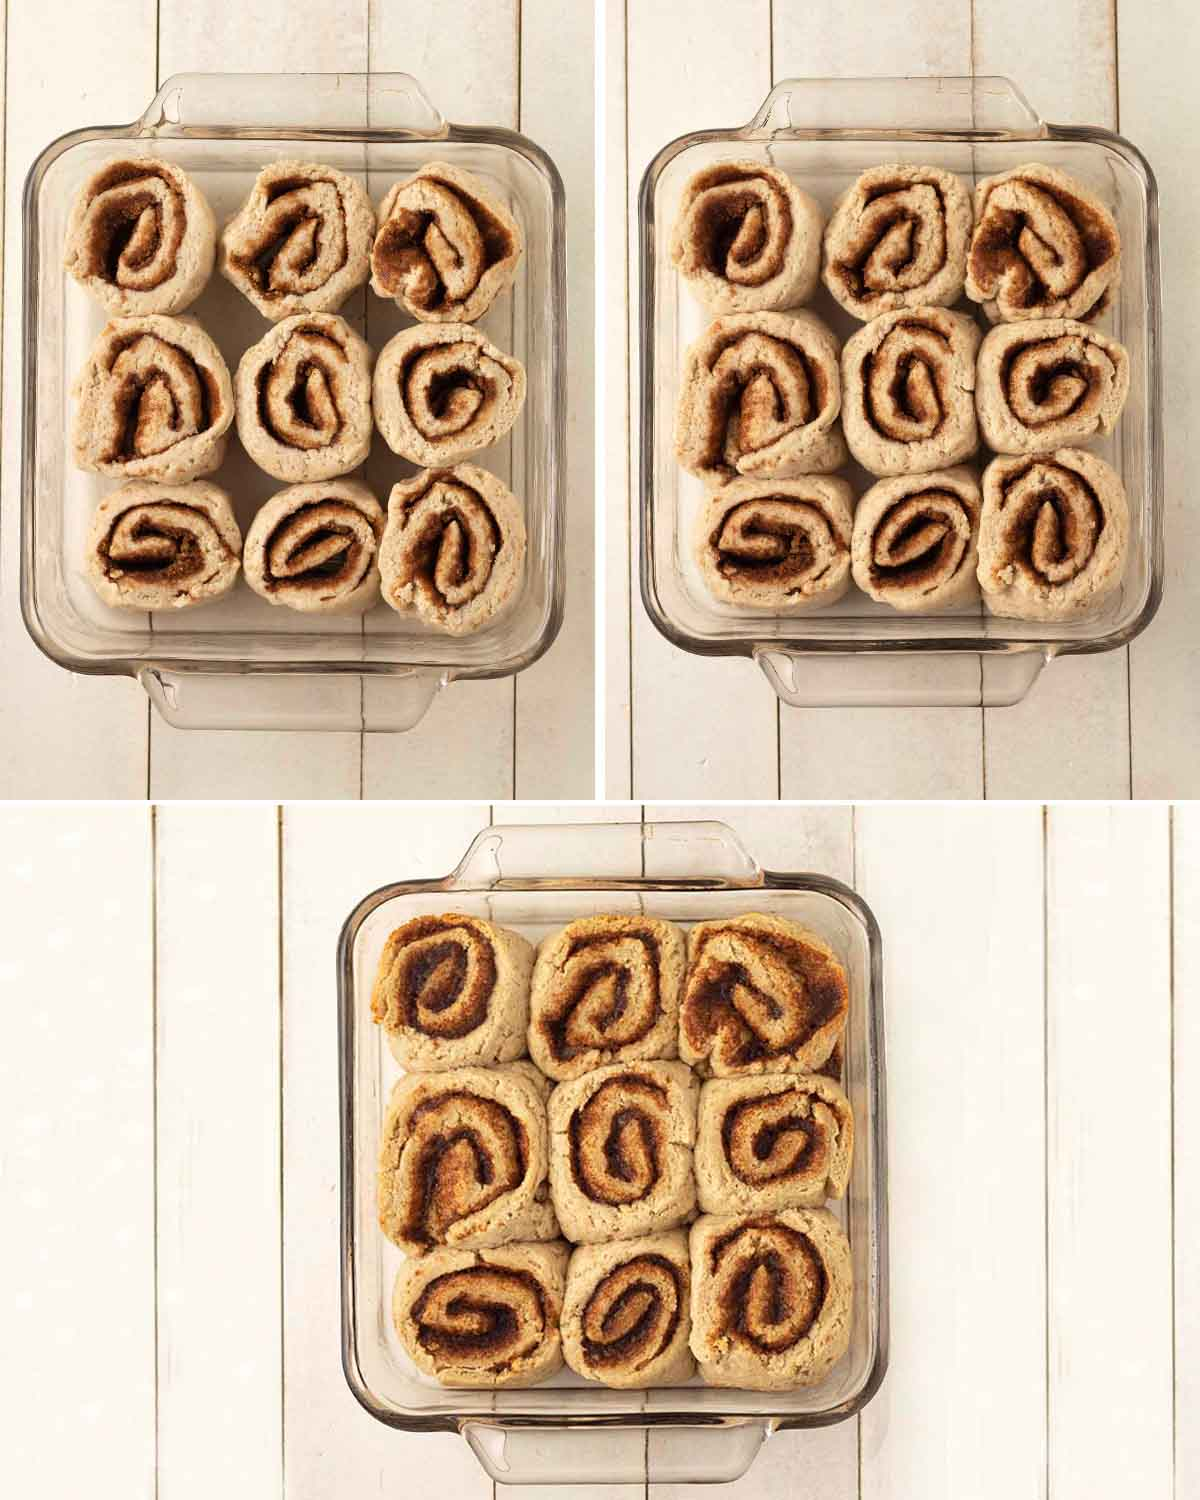 A collage of three images showing egg free cinnamon rolls before they rise, after they rise, and after they've baked.